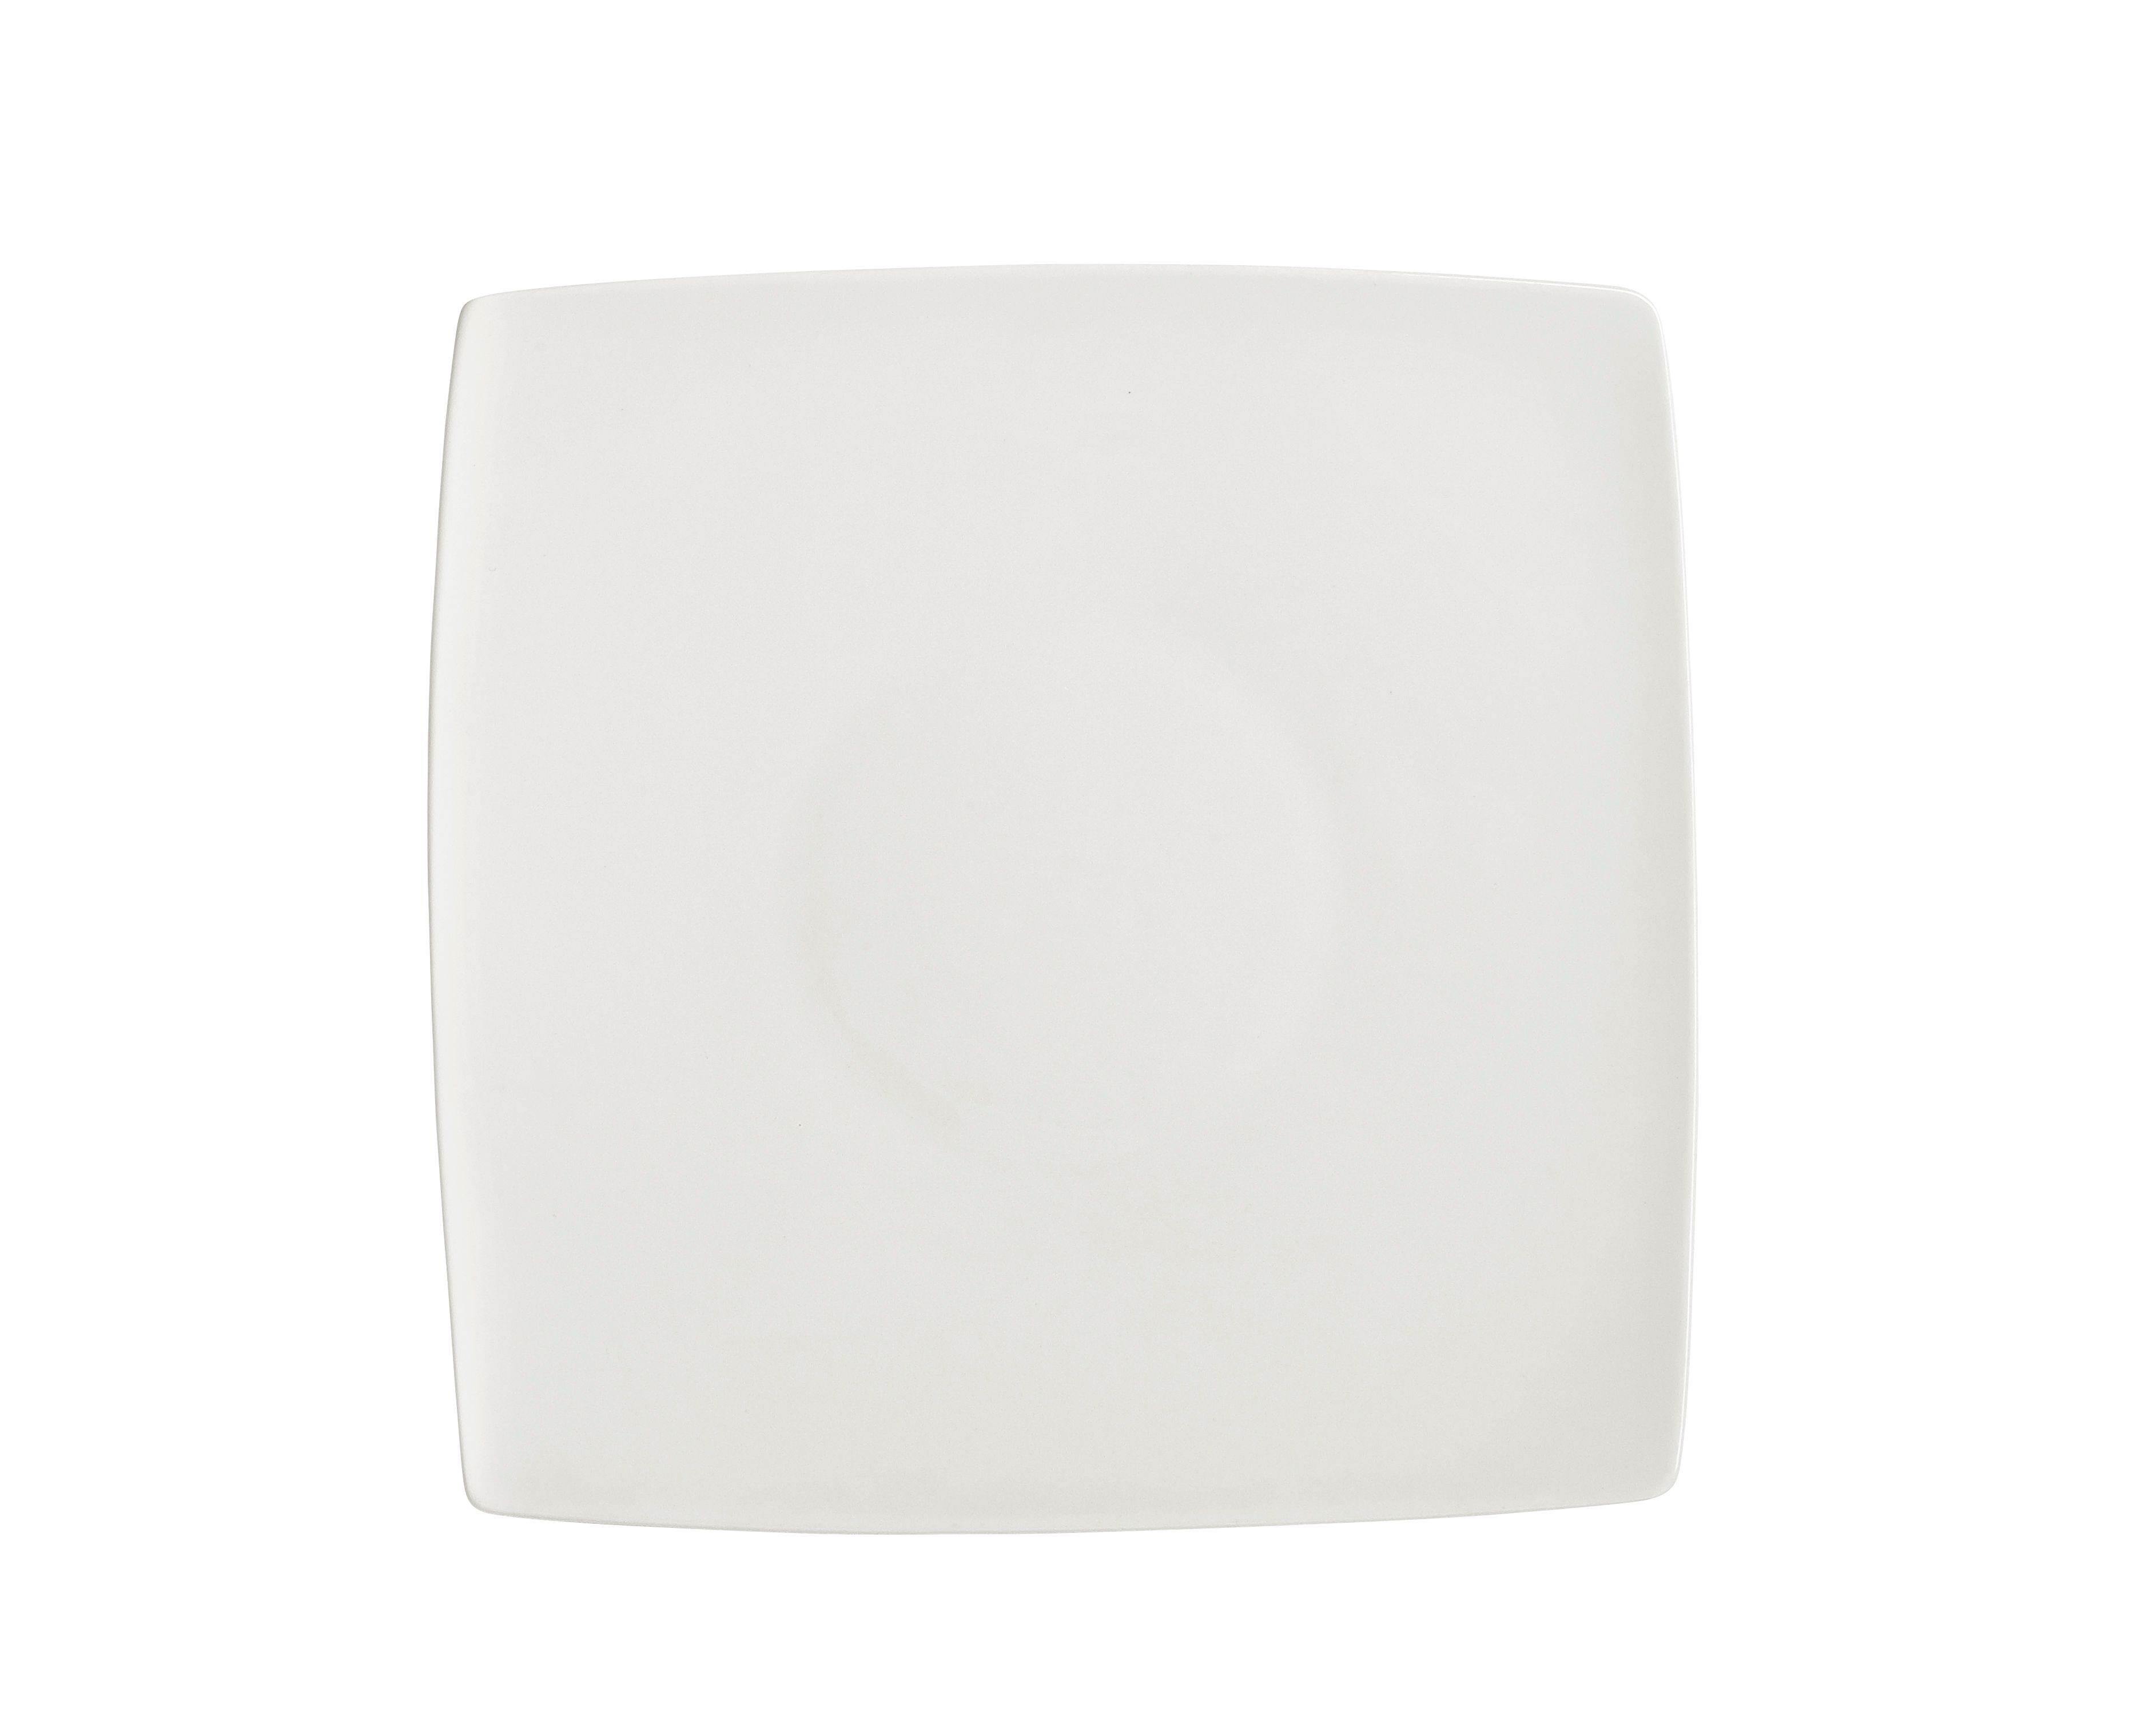 alt text alt text  sc 1 st  House of Fraser & Linea Nova Fine Bone China Dinnerware Range - House of Fraser